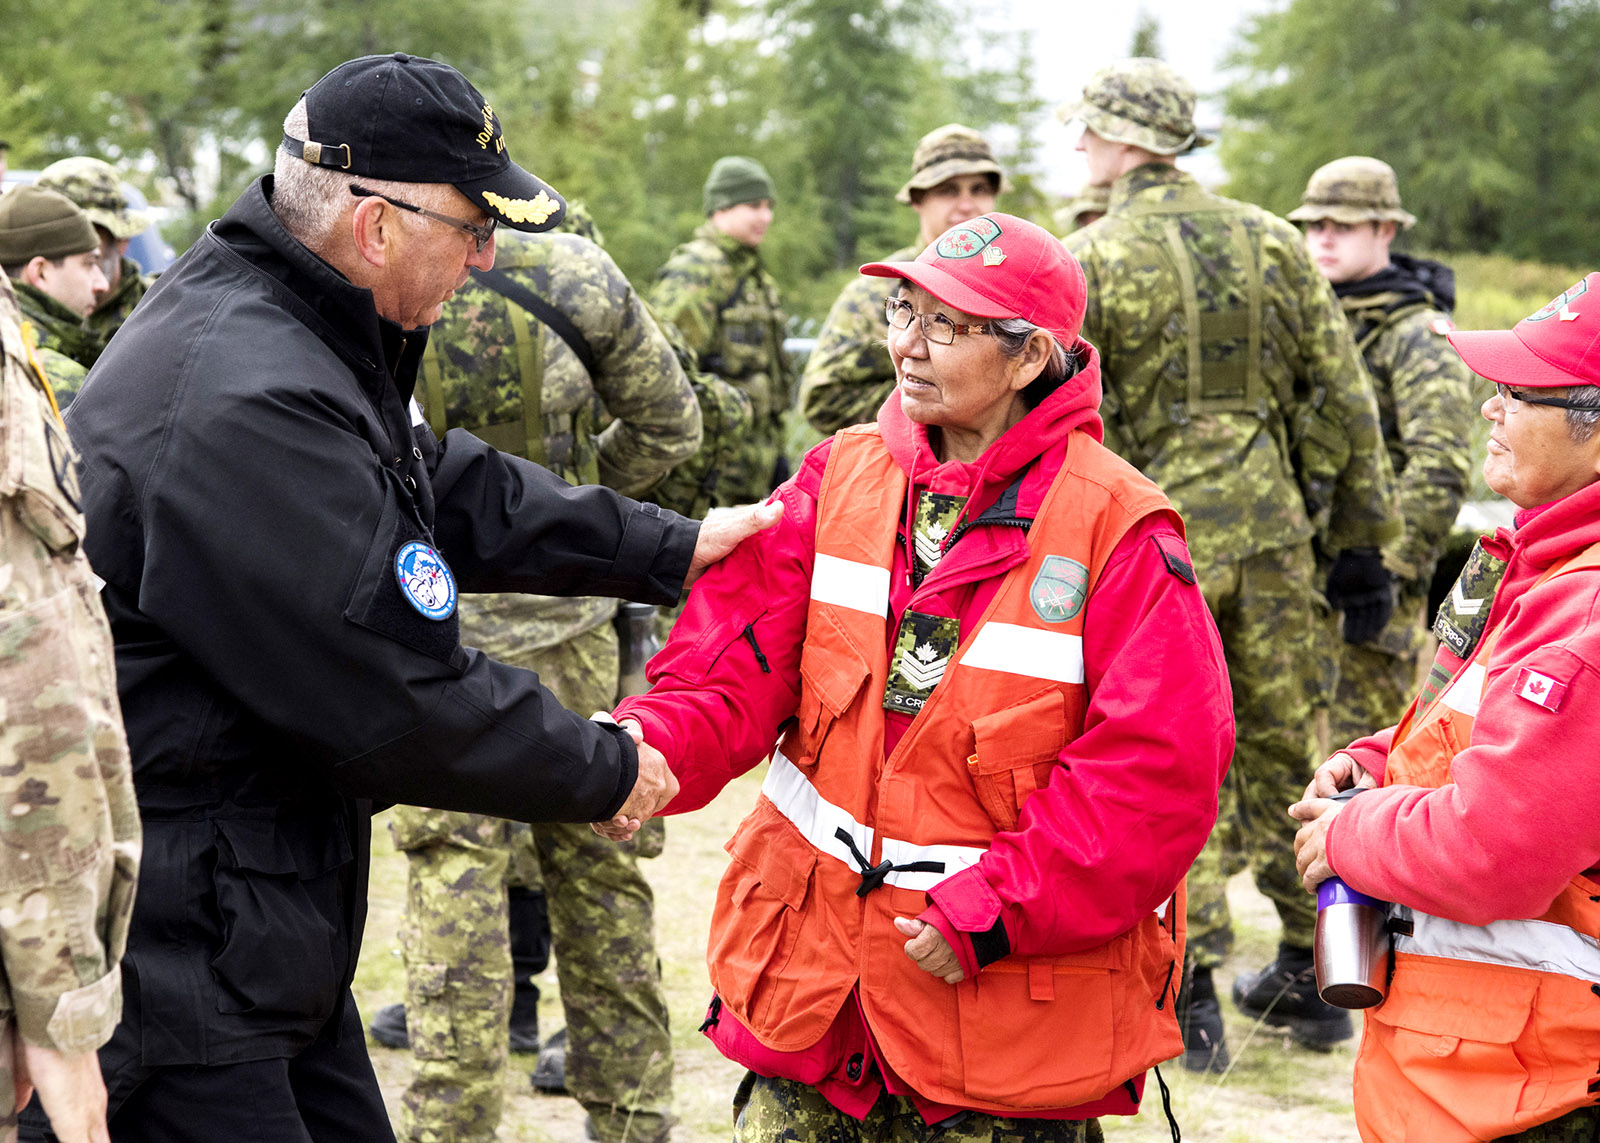 Rear-Admiral John Newton, former Commander of Maritime Forces Atlantic, talks to members of the Canadian Rangers in the community of Nain, Labrador.